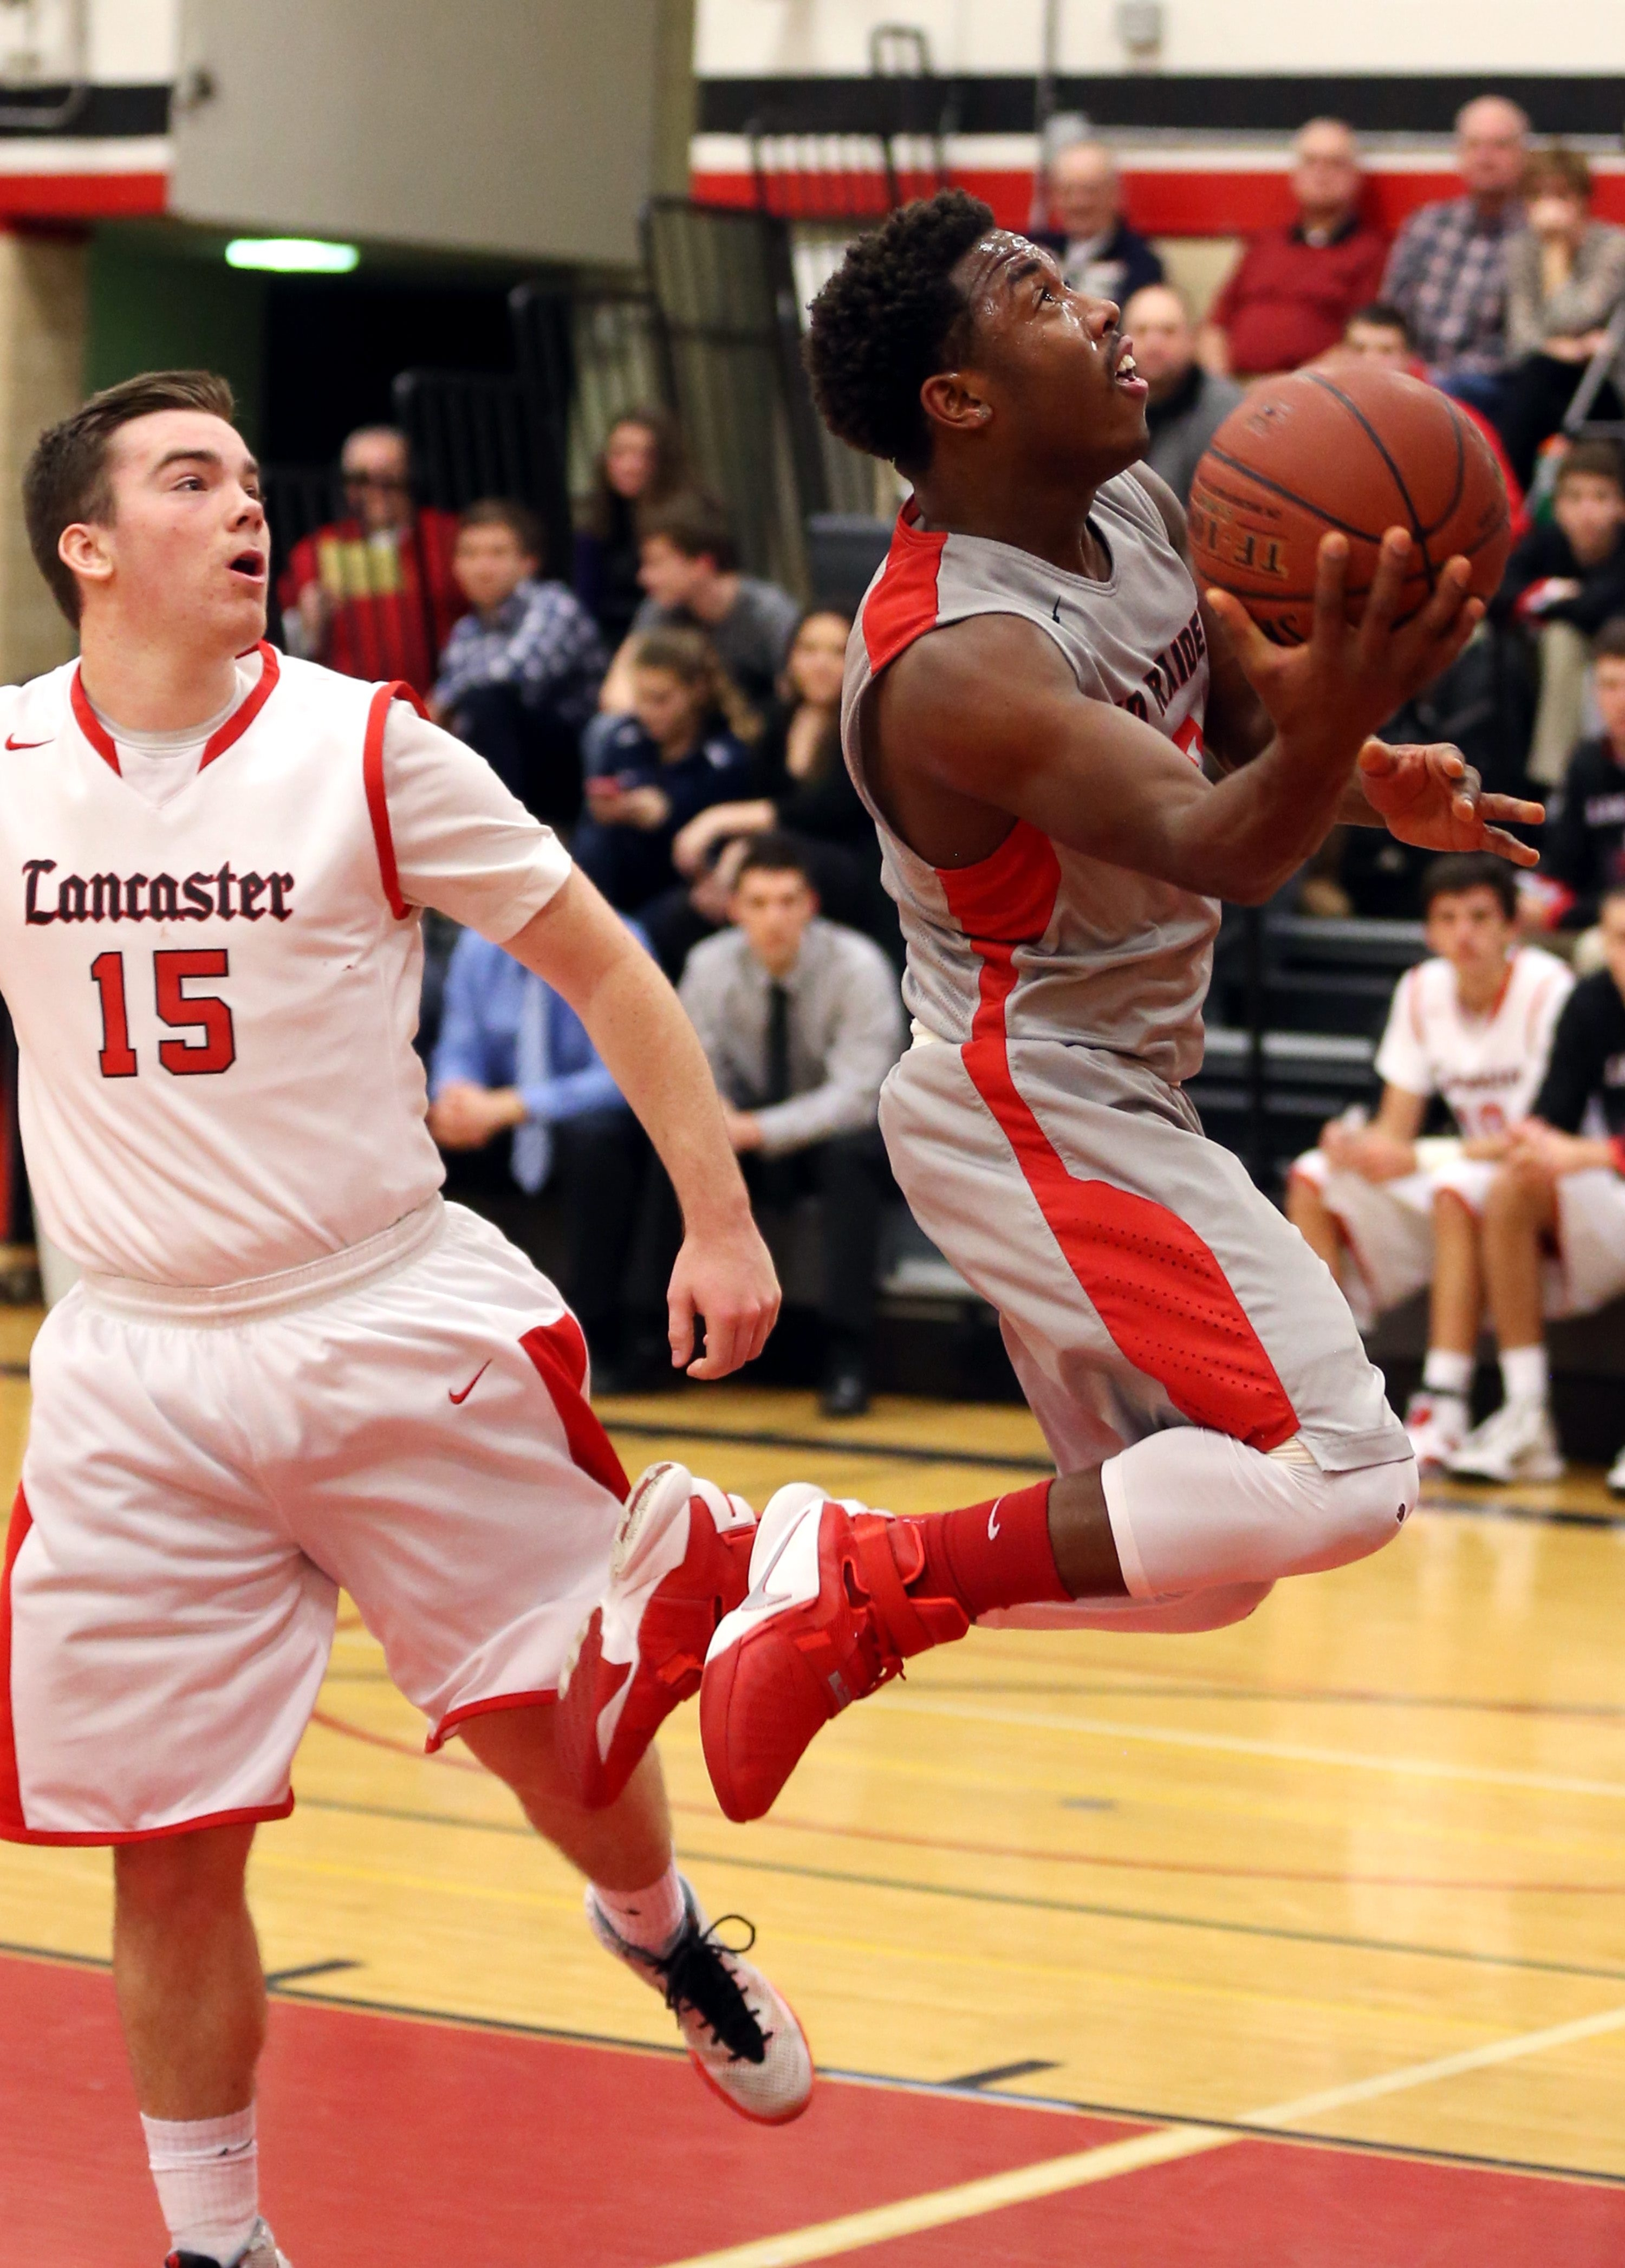 Jamestown's Zacc Kinsay scores two points  against lancaster's Sean Gill in the second quarter at Lancaster High School in Lancaster, NY on Monday, Jan. 25, 2016.  (James P. McCoy/ Buffalo News)